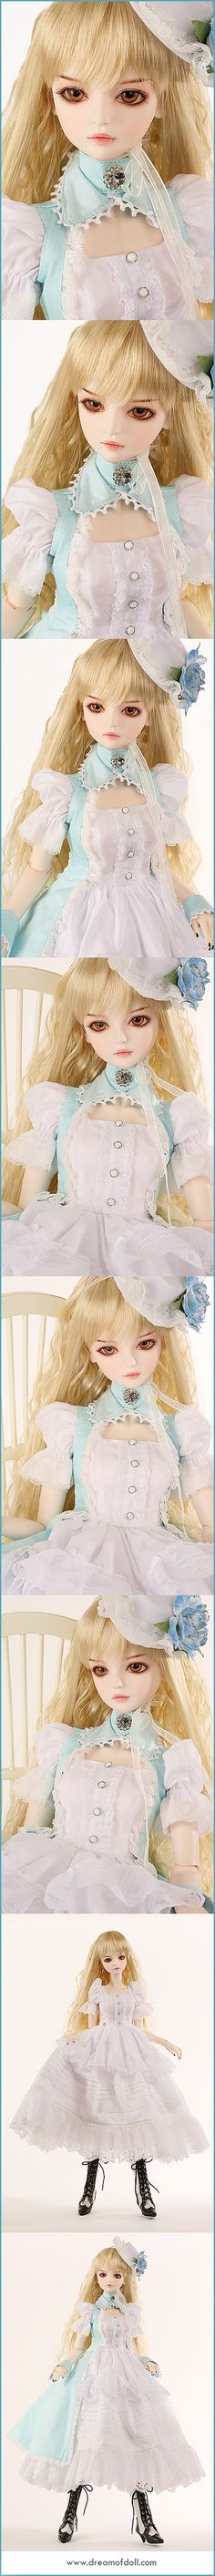 Welcome to Dream Of Dolls